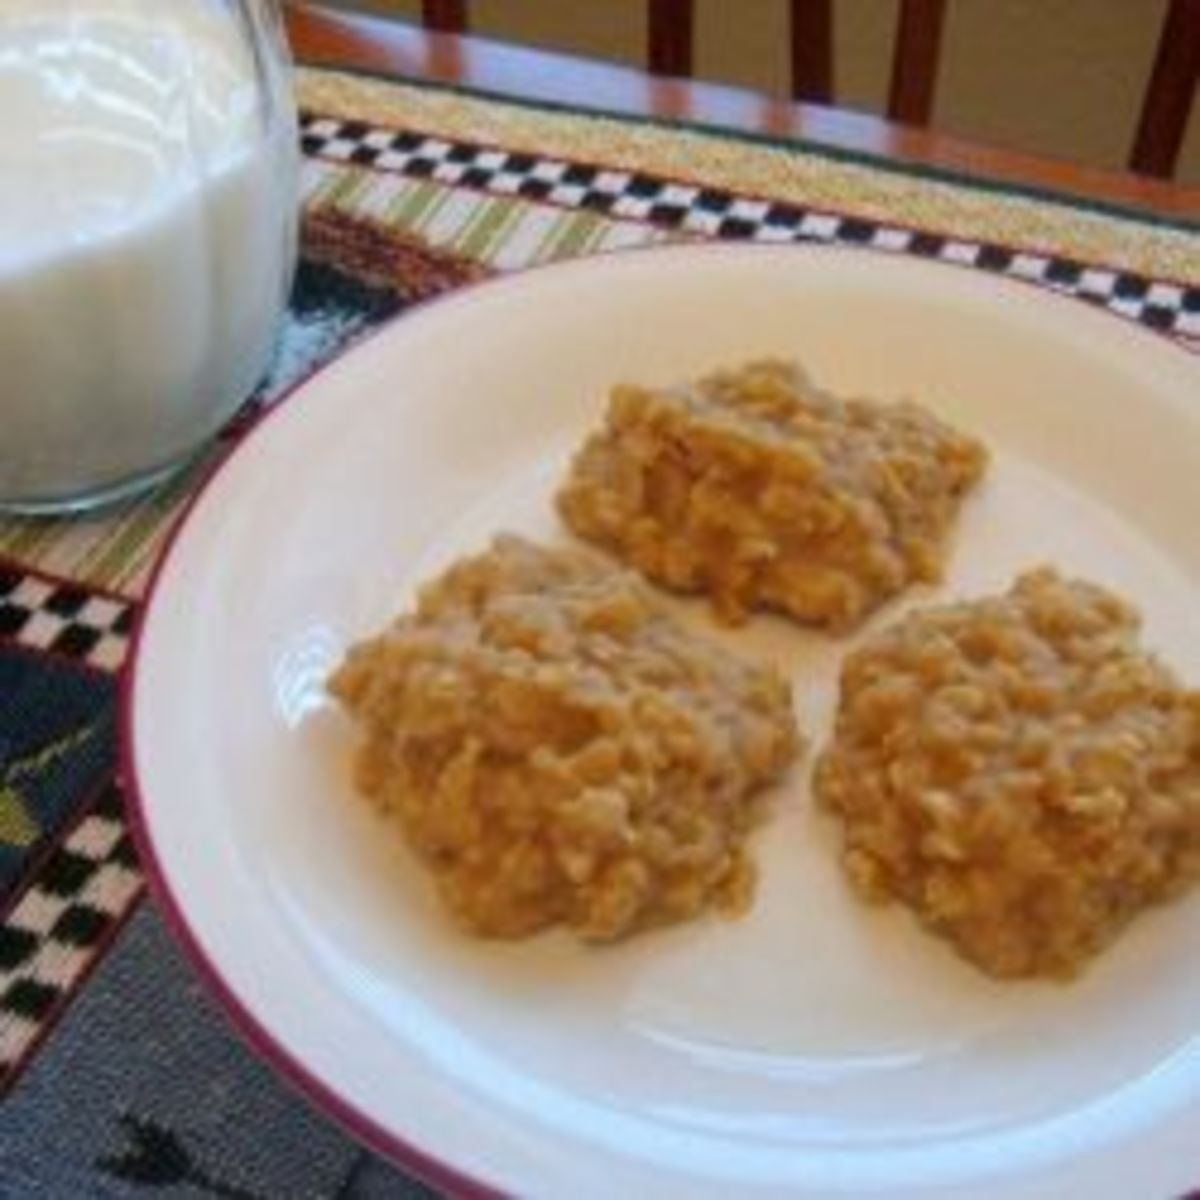 Peanut butter cookies make a great after school snack!